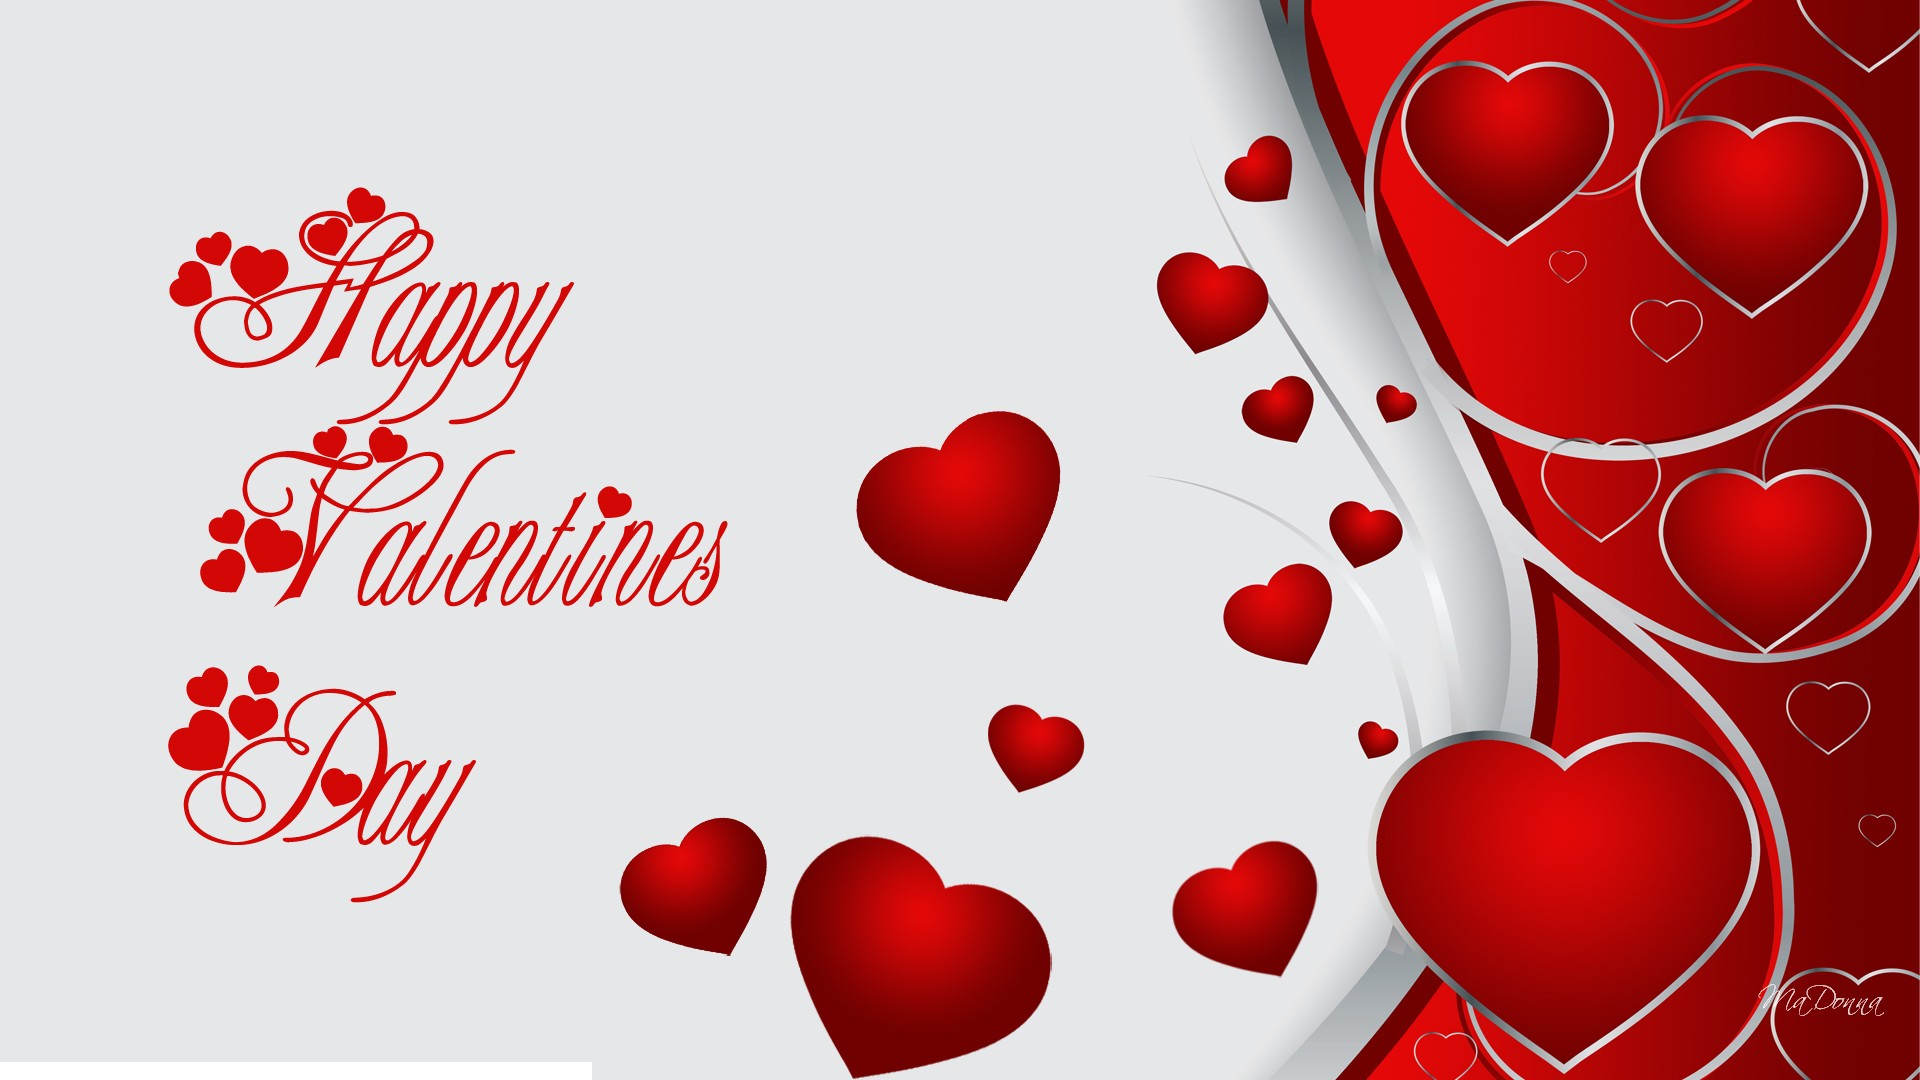 happy valentines day hd hearts free wallpaper 2016